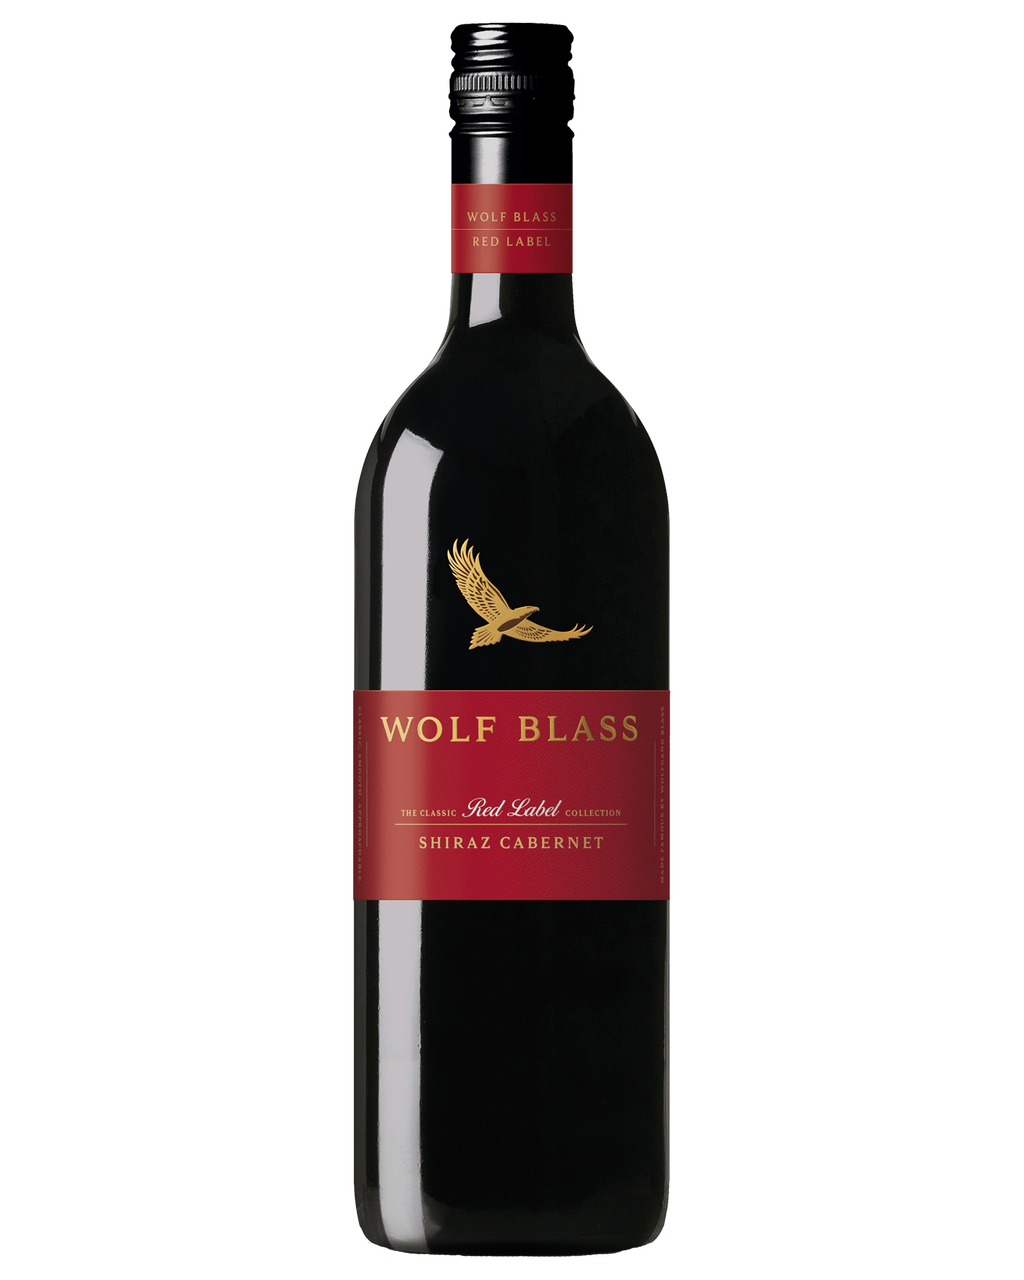 Wolf Blass Red Label Shiraz Cabernet 750ml